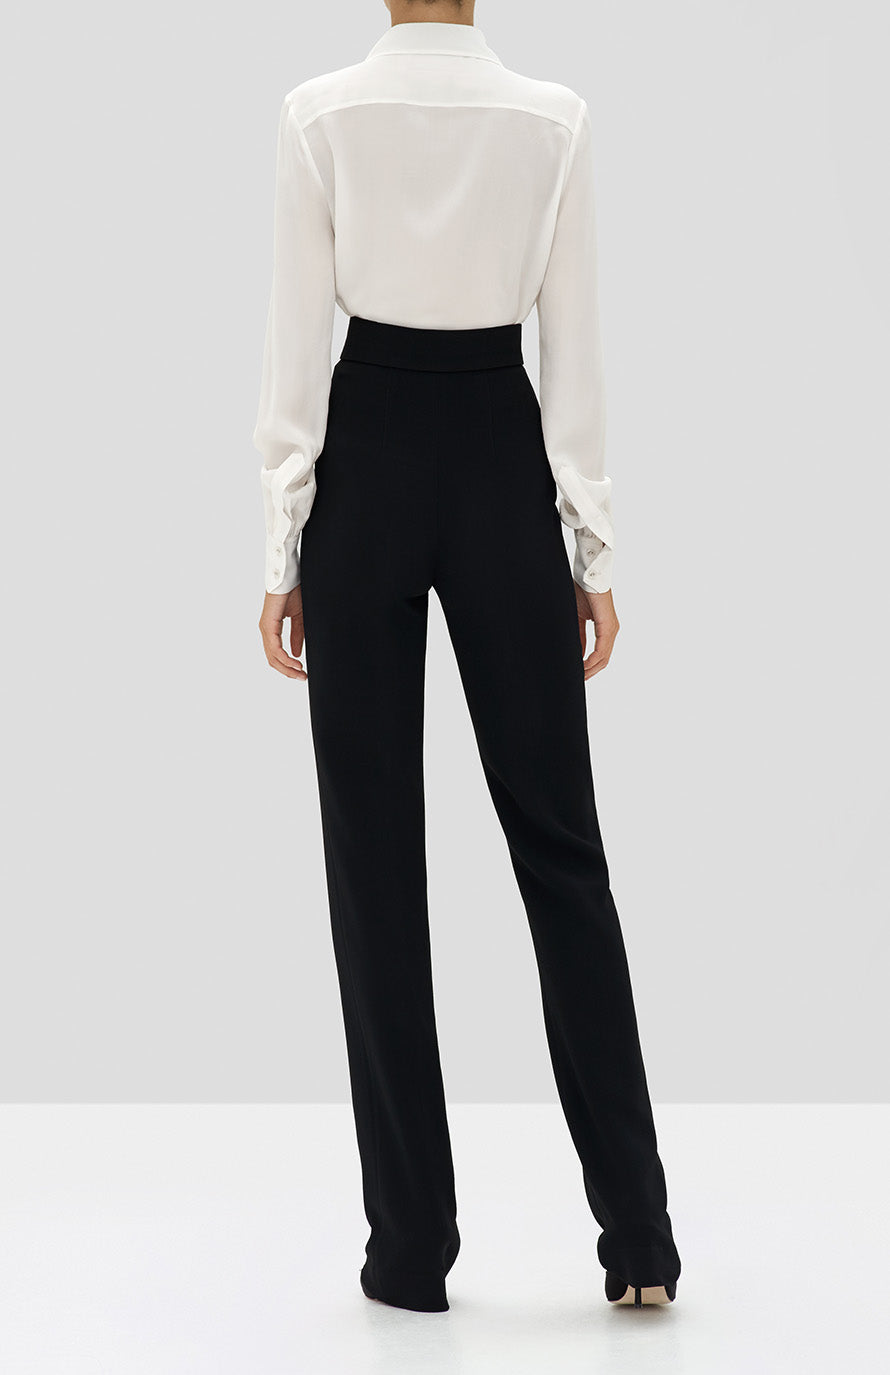 Alexis Crawford Top in Off White and Lofton Pant in Black from the Holiday 2019 Collection - Rear View